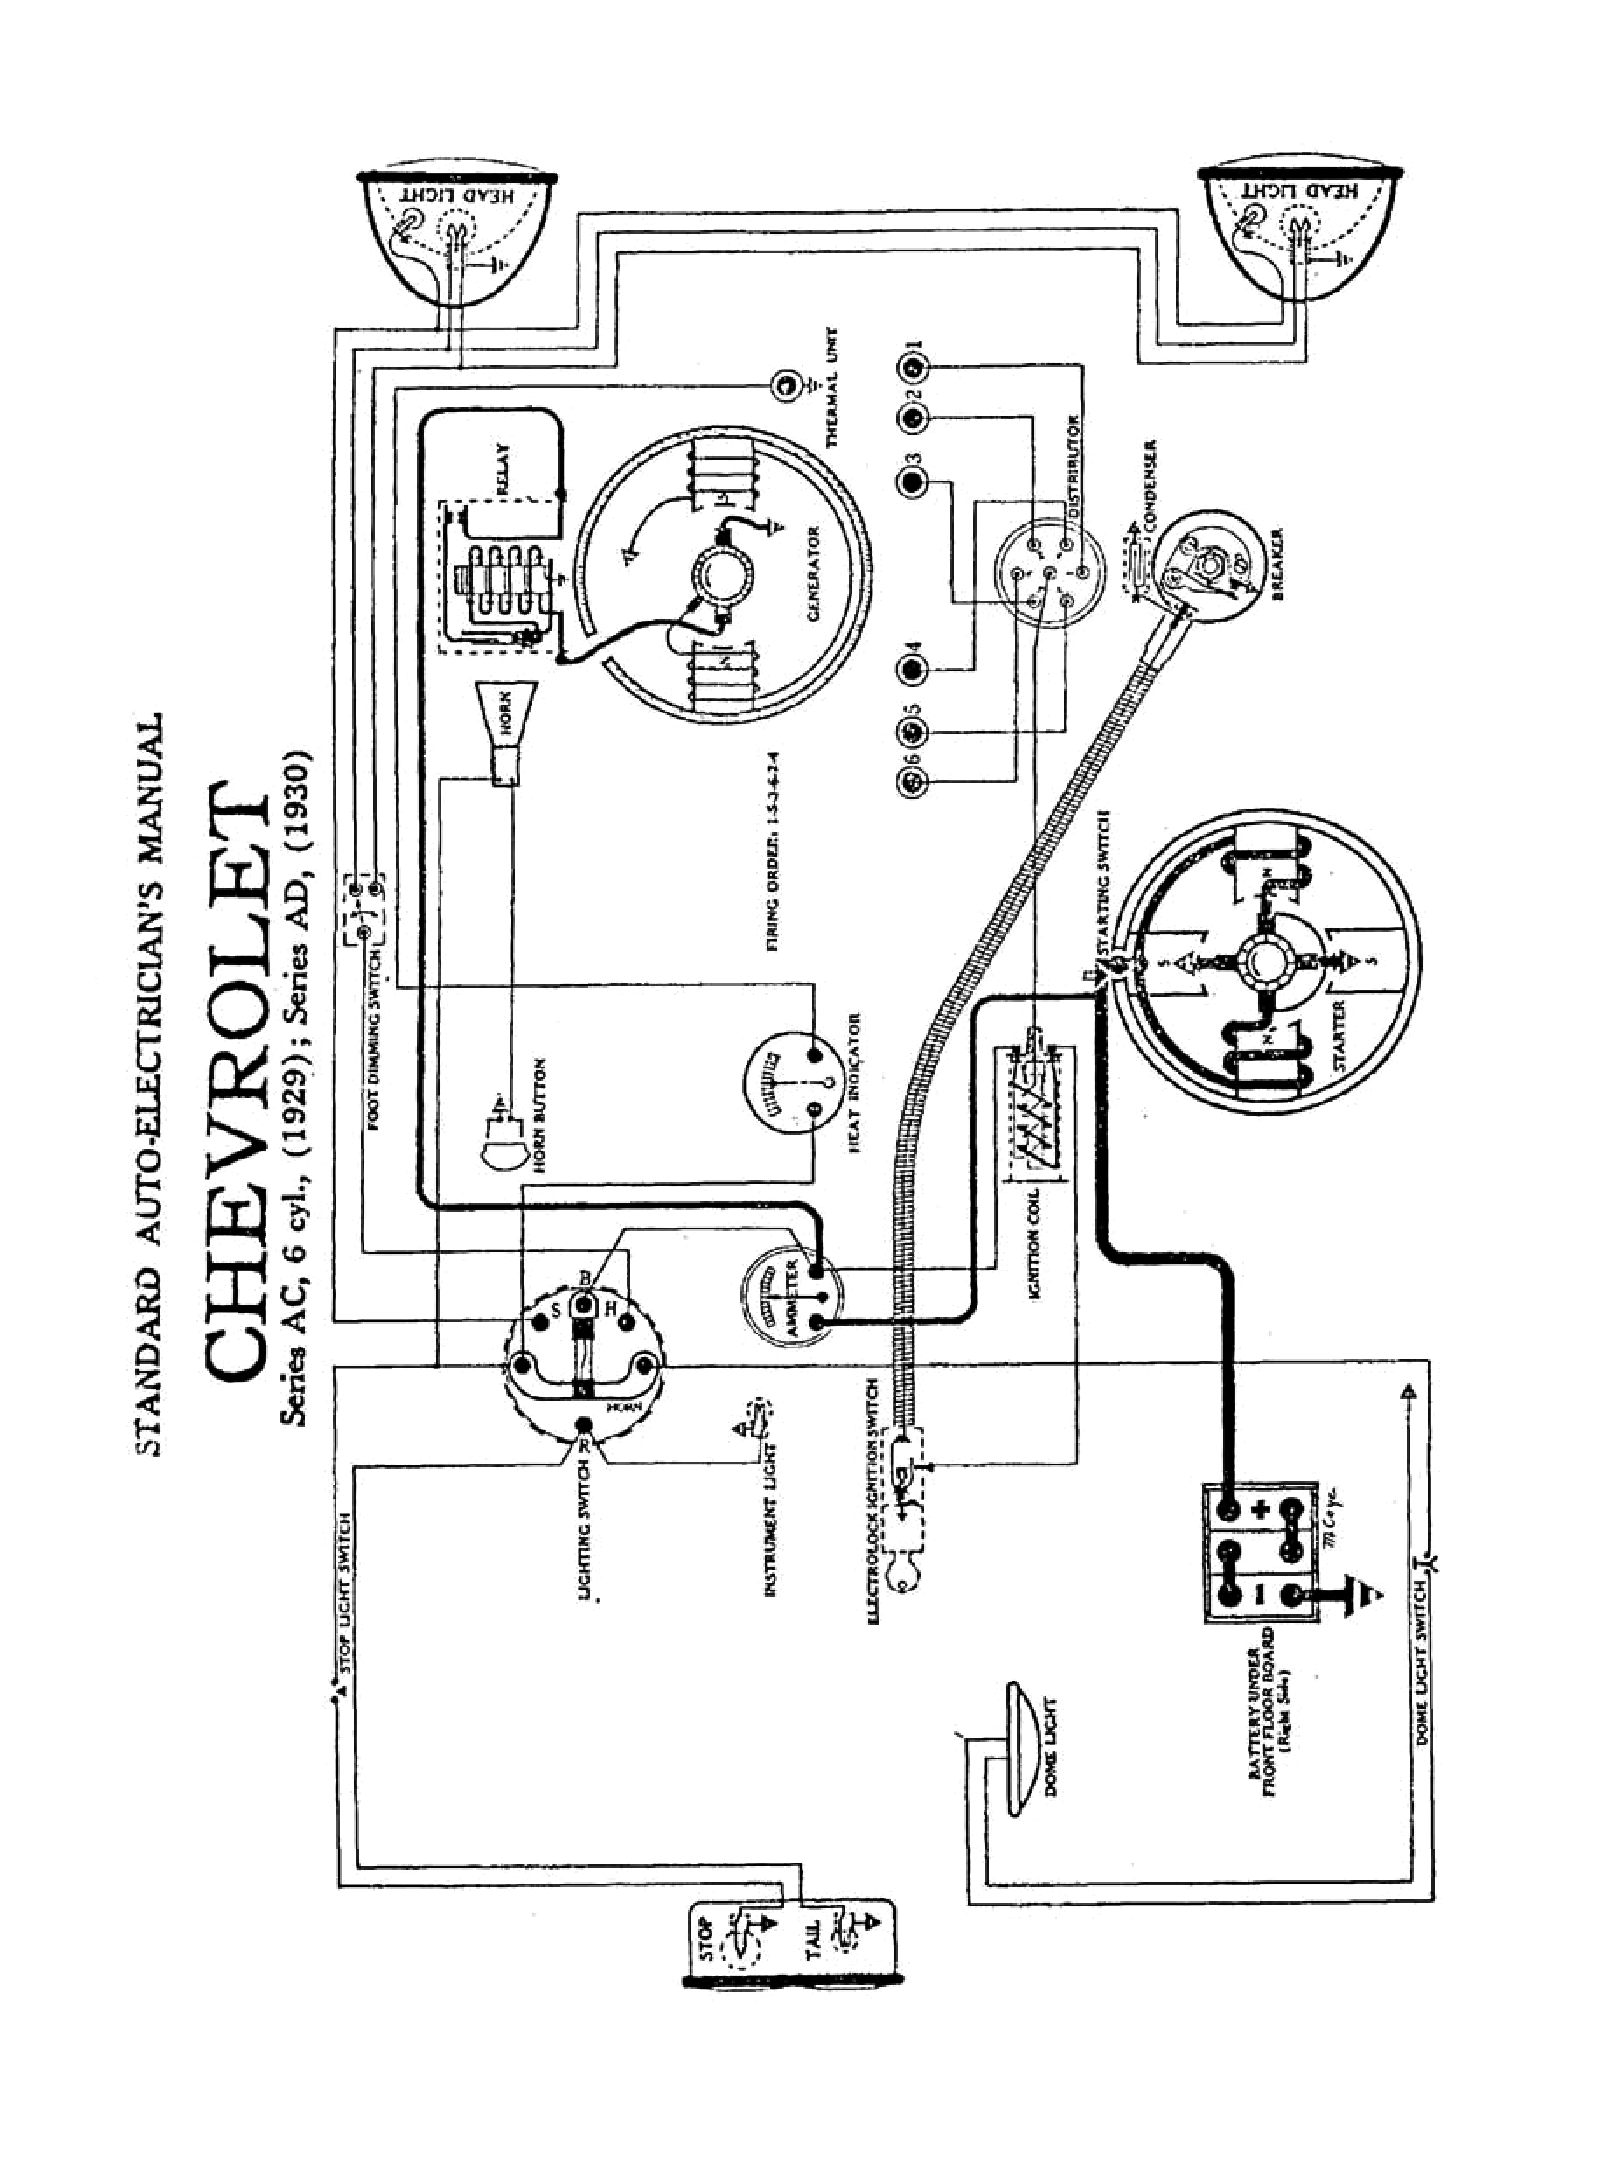 Chevy Wiring Diagrams Basic Ac 1929 Series Model